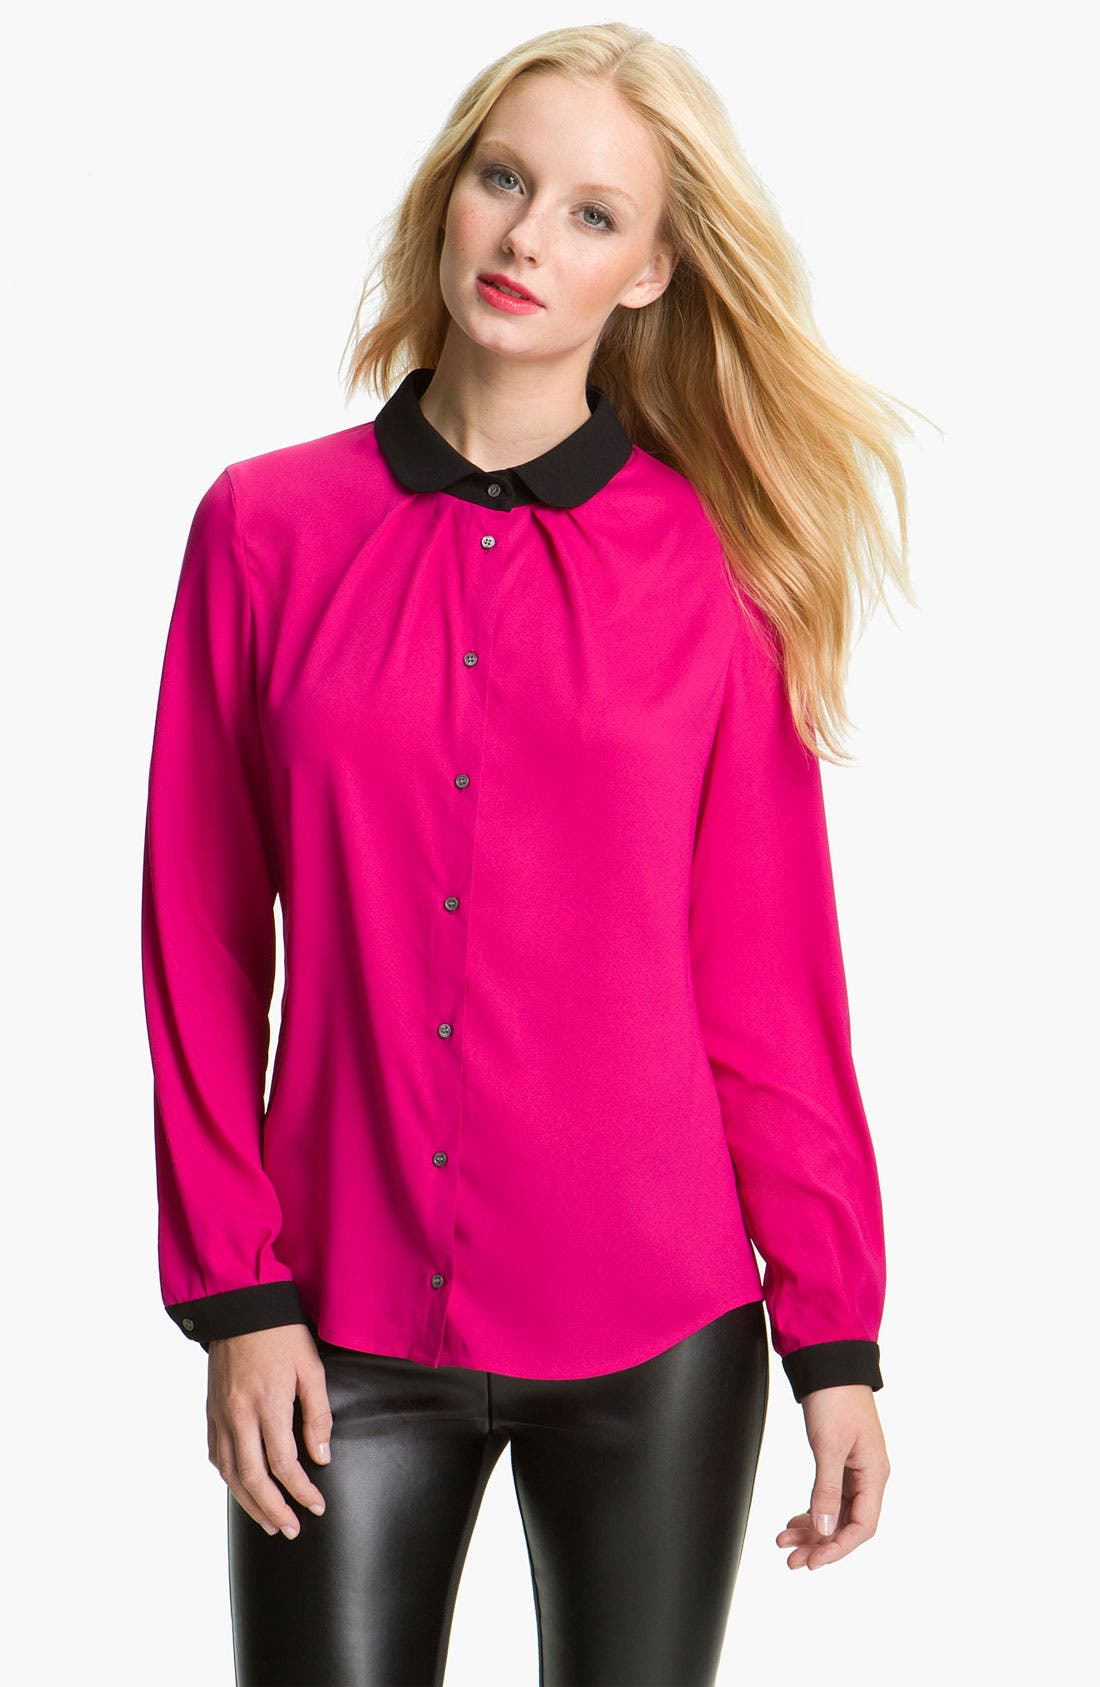 Alternate Image 1 Selected - Vince Camuto Contrast Trim Blouse (Petite)